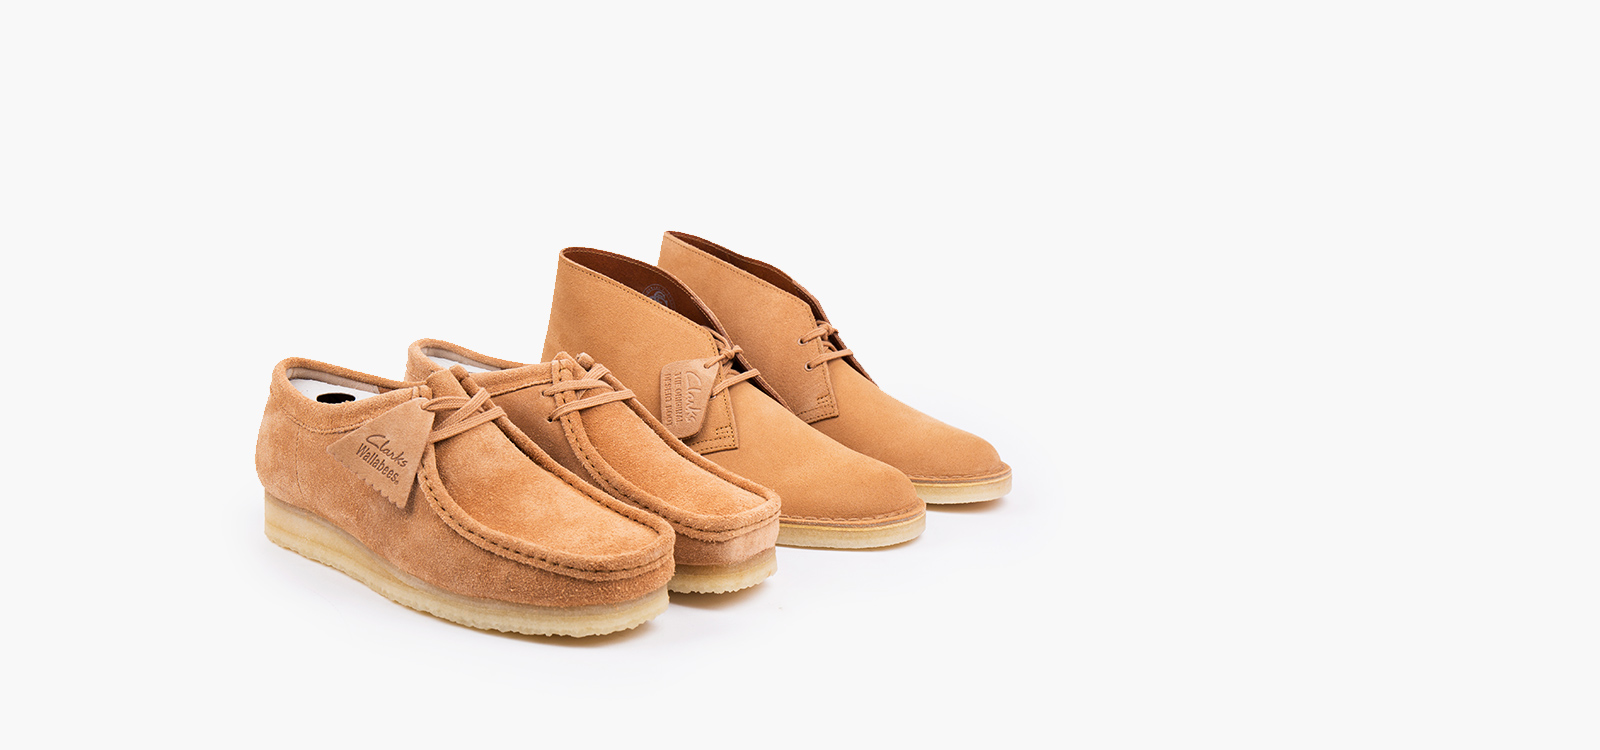 Butterscotch and Fudge with Clarks Originals